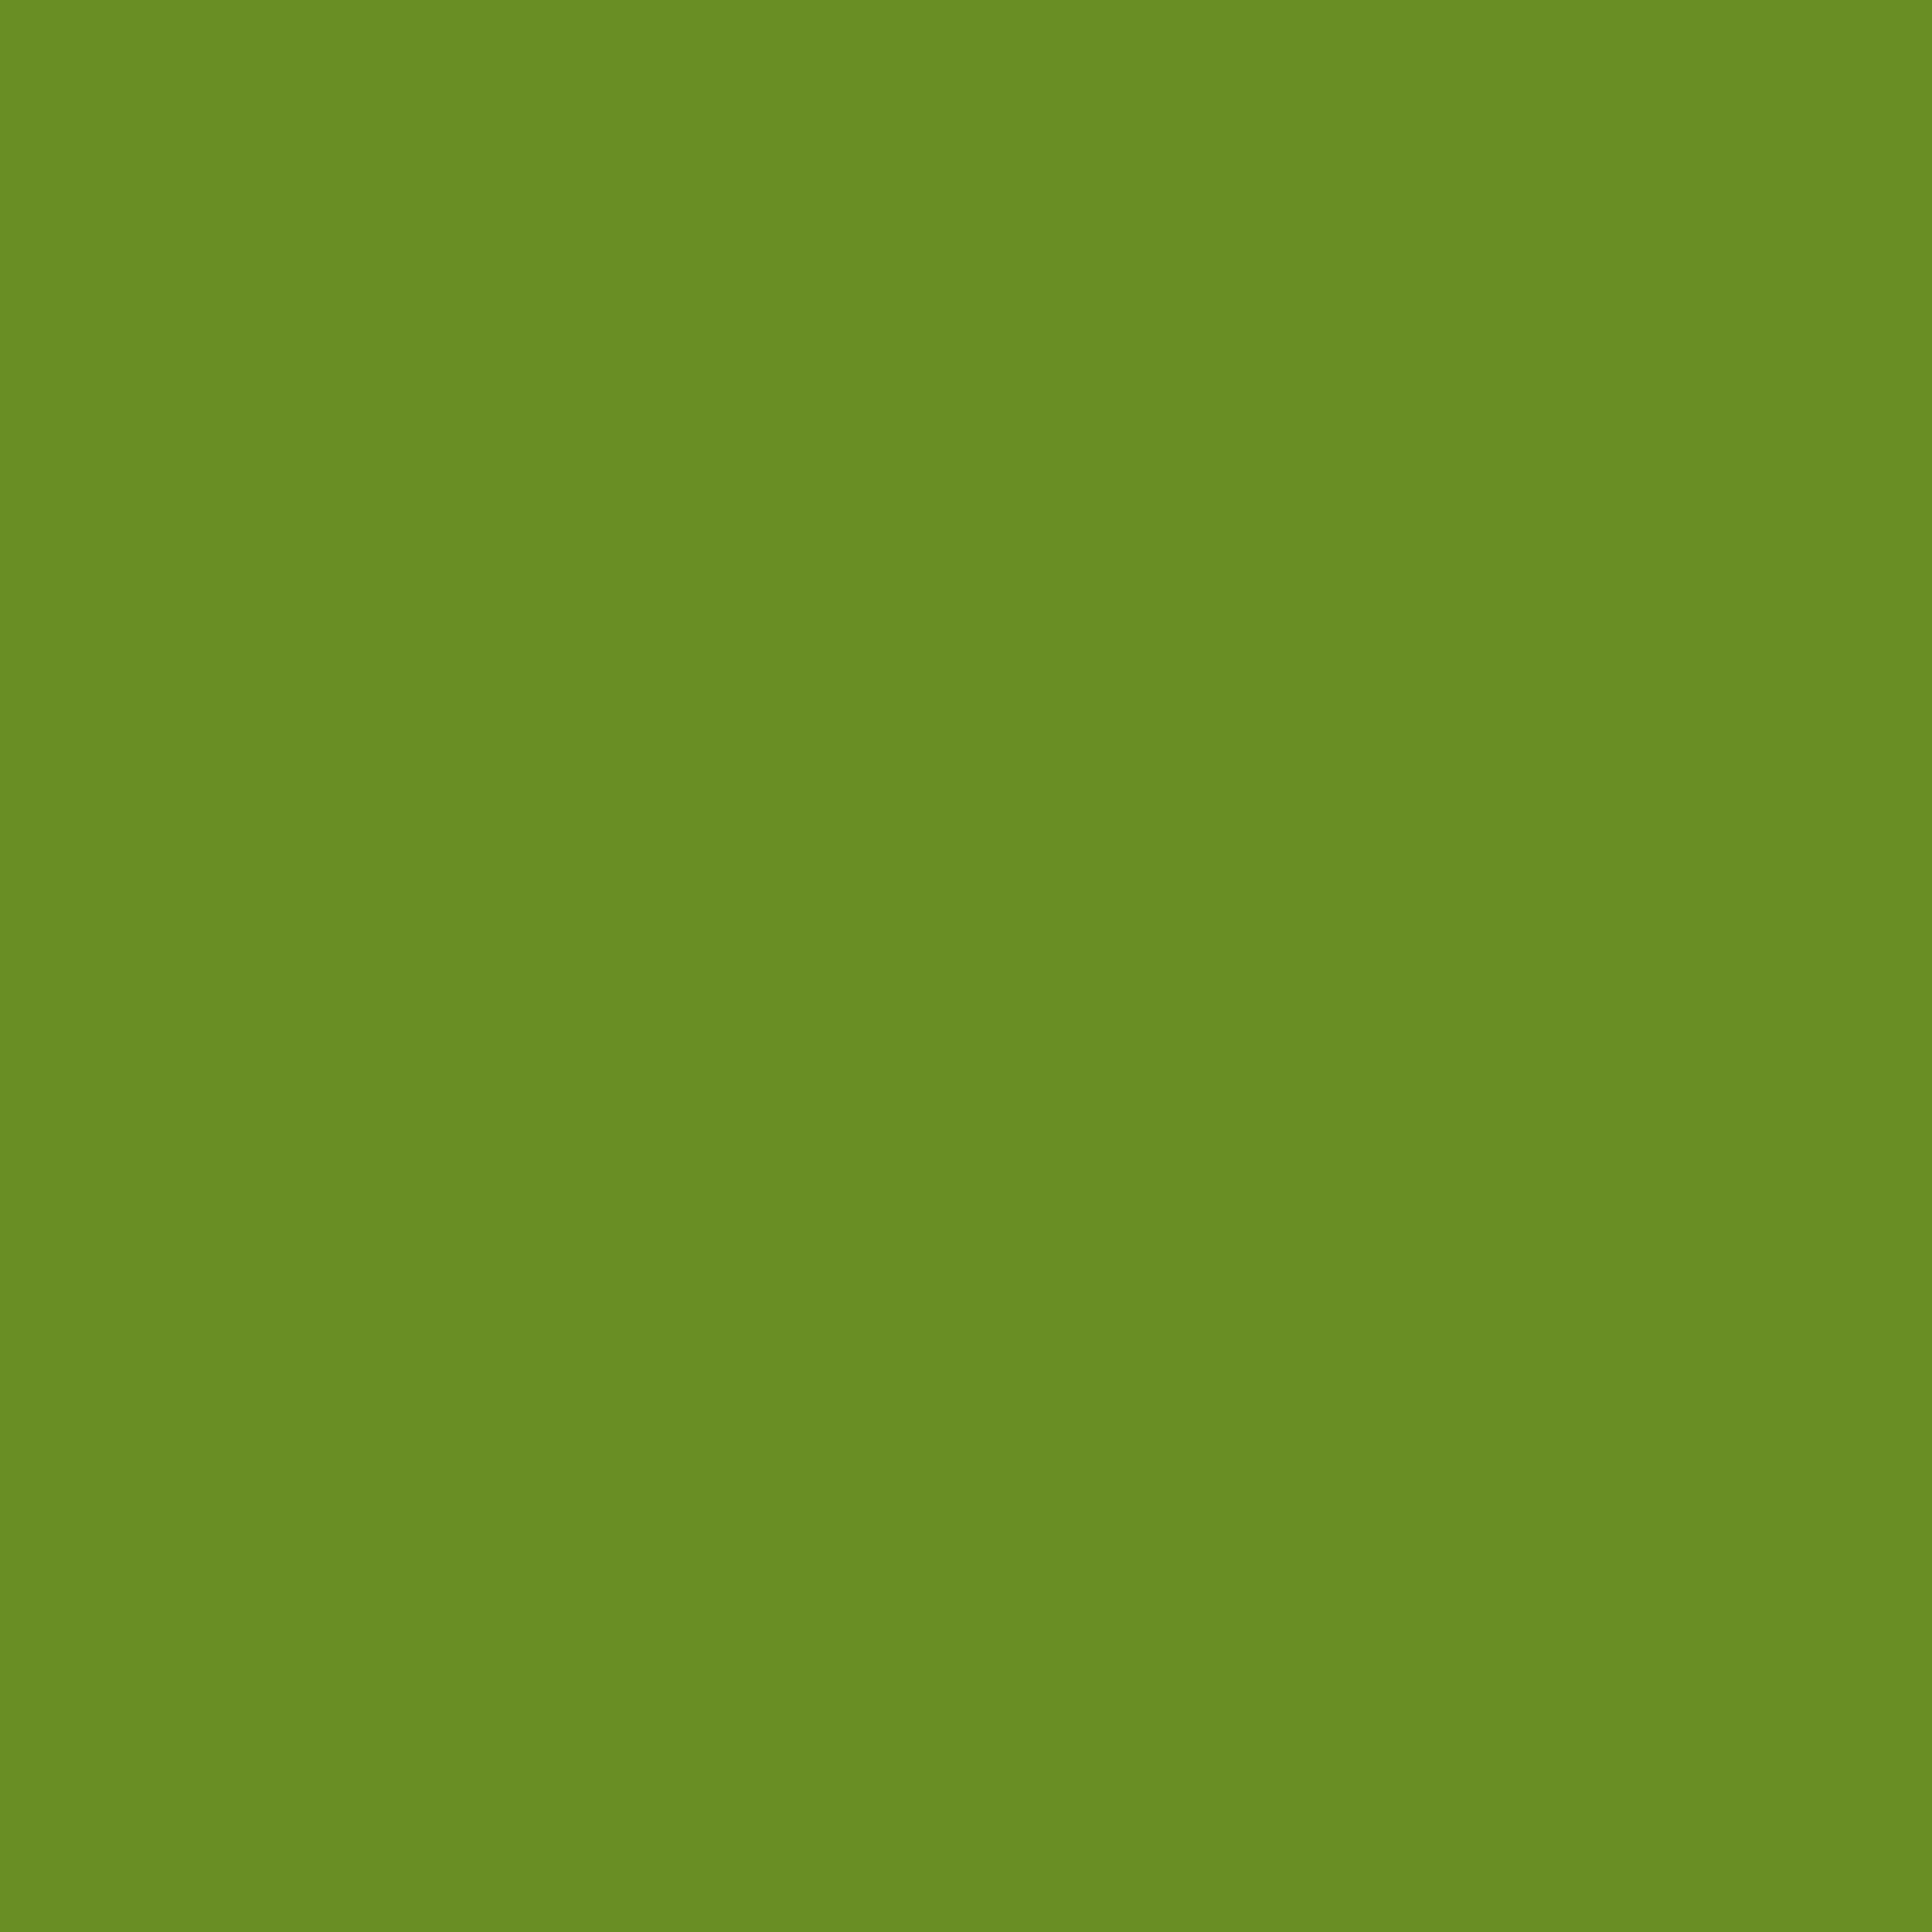 2732x2732 Olive Drab Number Three Solid Color Background